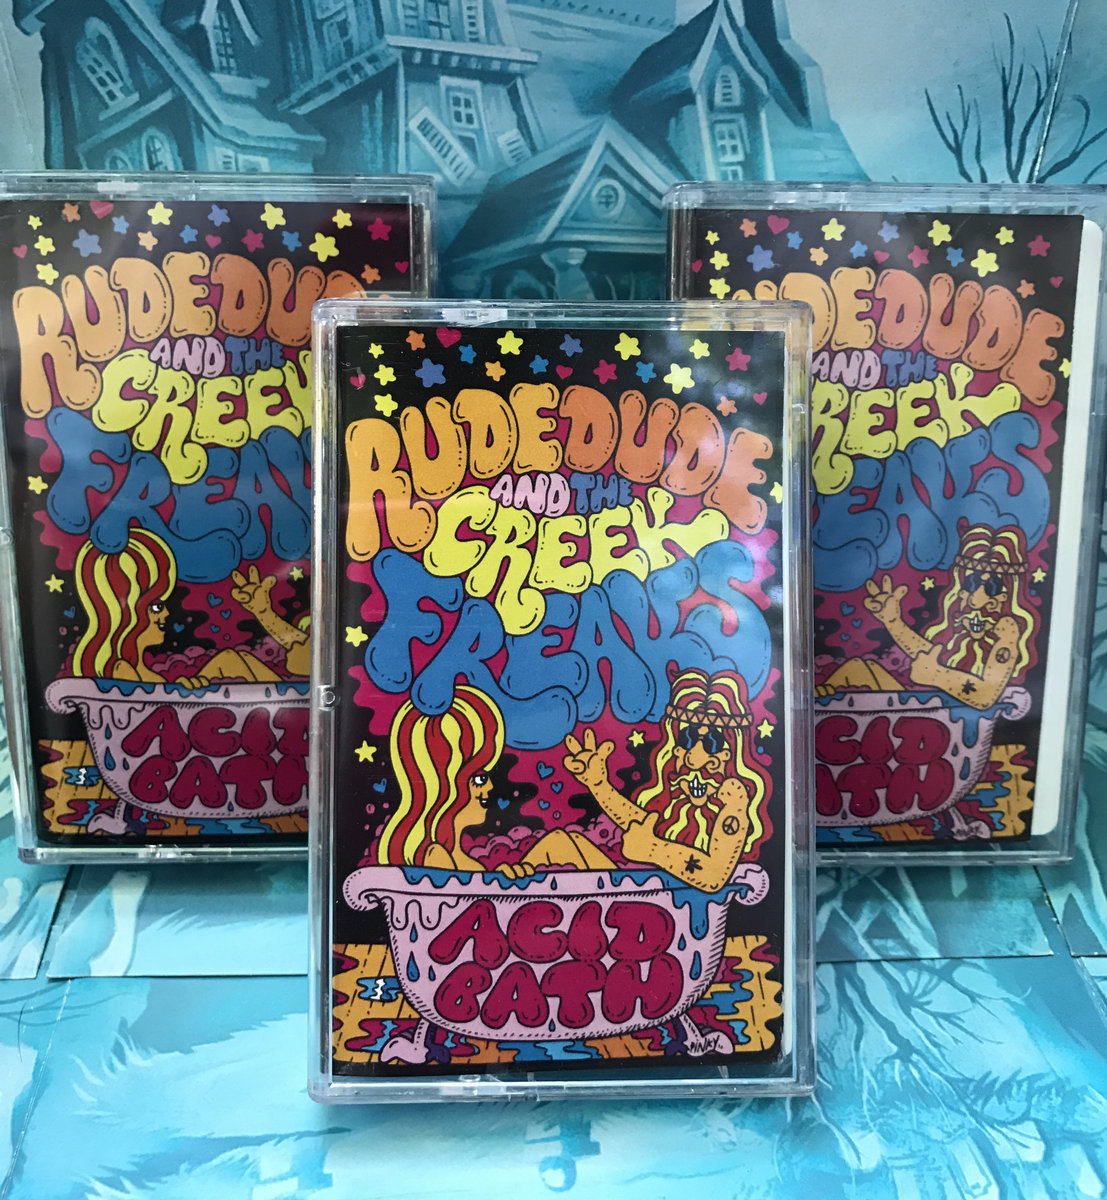 Acid bath rude dude and the creek freaks for Bathroom s bandcamp